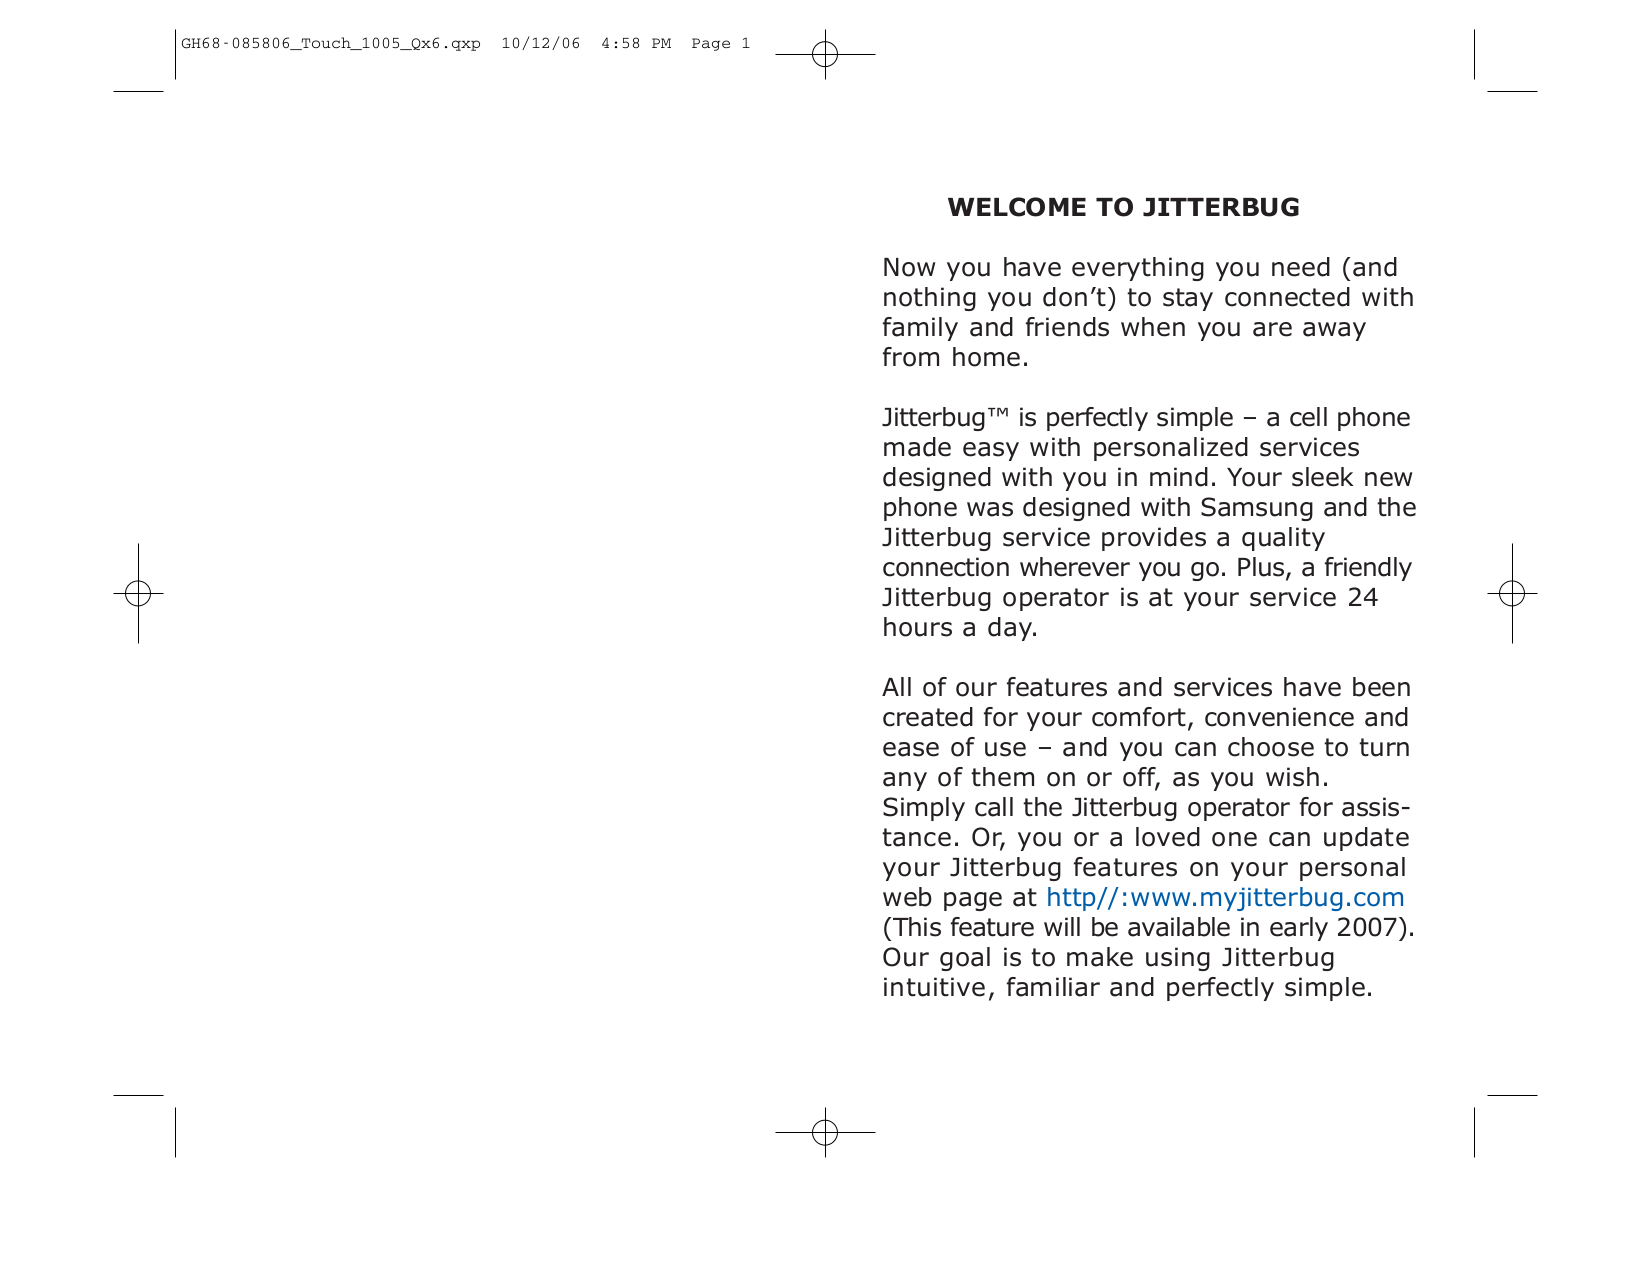 pdf for Jitterbug Cell Phone One Touch manual